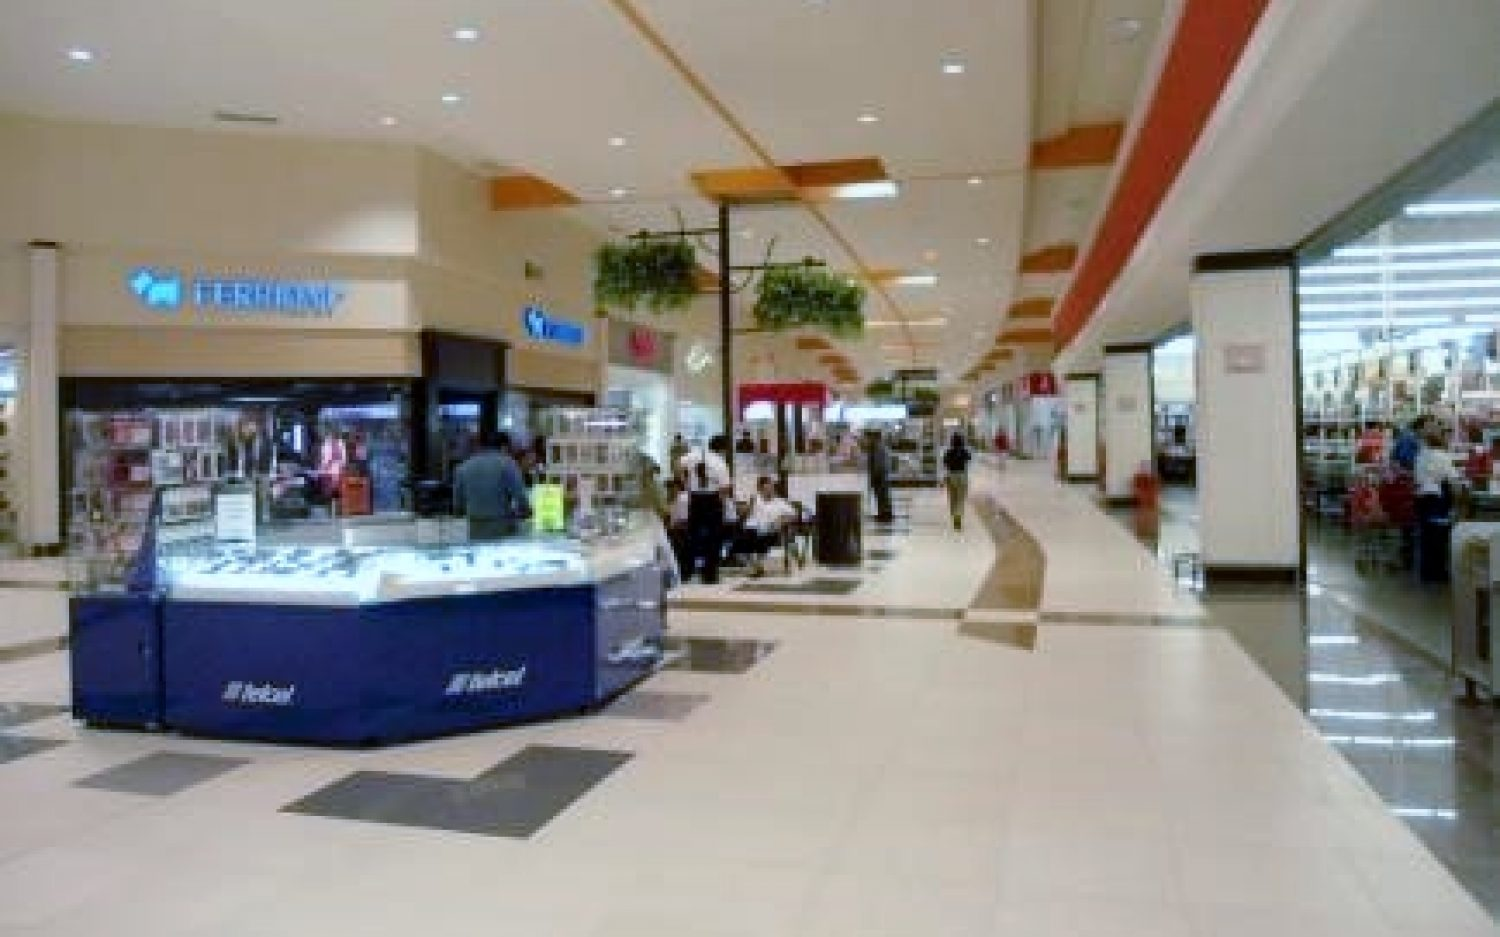 Co-Plaza Sendero Villahermosa (31)